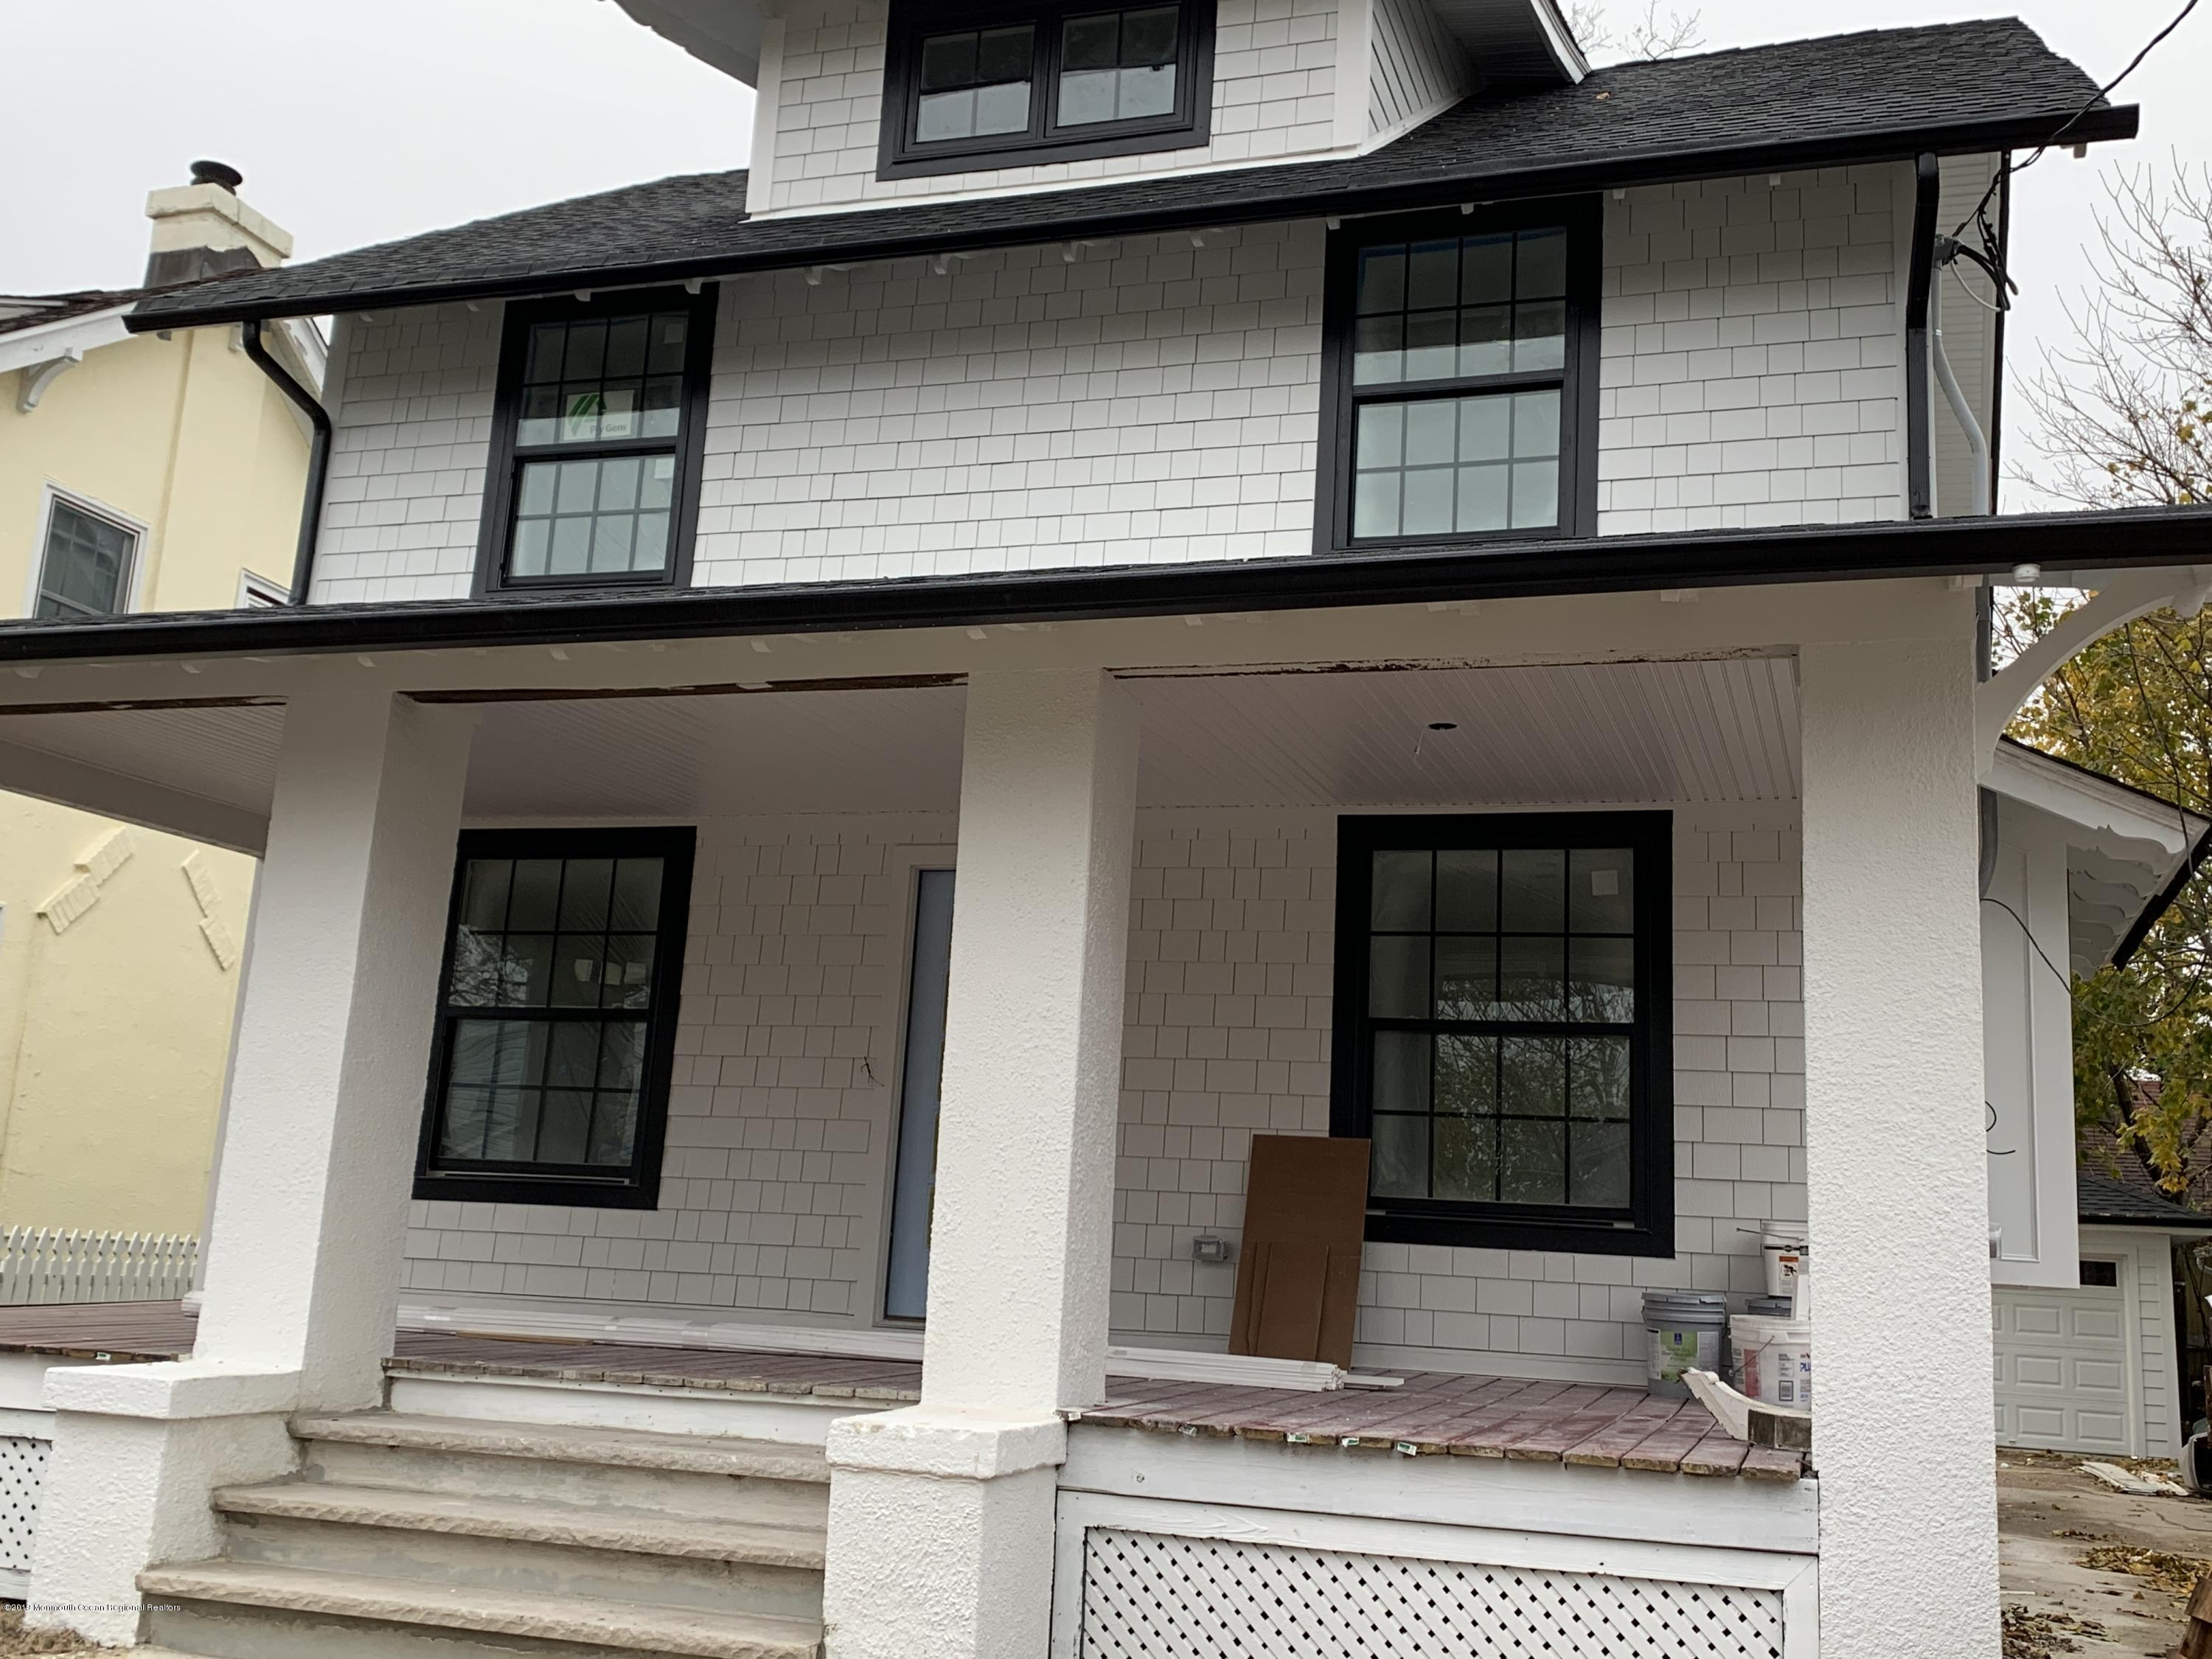 This beauty is almost complete and ready for it's new owner.  She has had a complete renovation to the studs and is now a spectacular combination of vintage Asbury and modern, contemporary living at its best.  Spacious first floor with huge fireplace and designer kitchen and dining room in the desireable NW section of town.  Hardie plank white siding with black windows gives this stately colonial a modern yet timeless vibe.  Huge front porch for three season relaxing and renovated 2 car garage in the back.  Brand new glorious bathrooms and  bedrooms including the newly added ensuite master with finishable basement space and third floor loft area to complete the well thought out restoration of this unique property.  She will be ready for her new owner within the month.